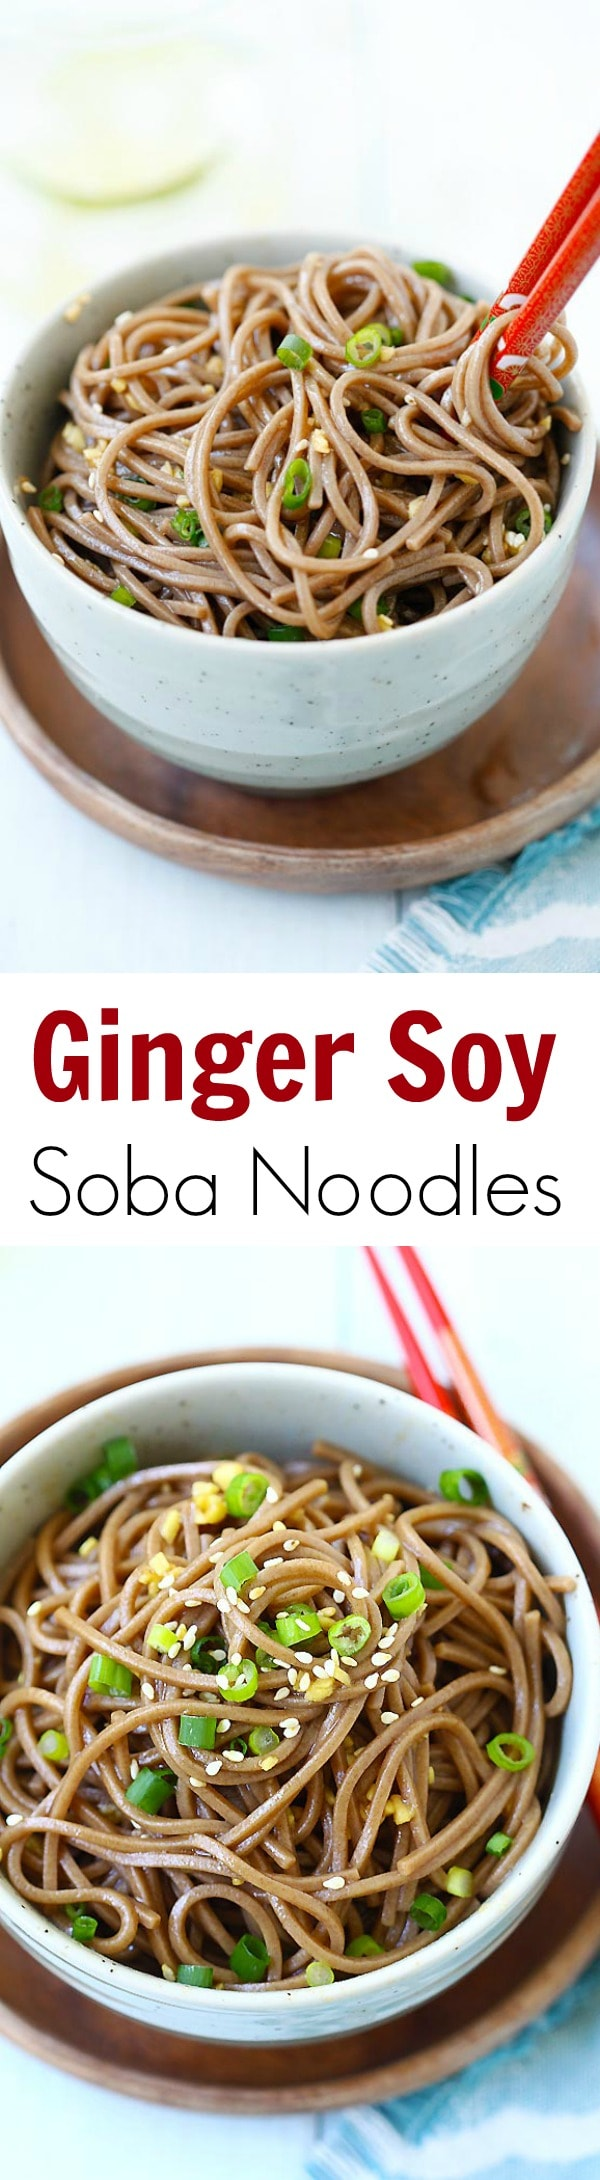 Ginger Soy Soba - the easiest and healthiest noodles made with ginger, soy sauce, honey and Japanese soba noodles. 15 minutes to make! | rasamalaysia.com